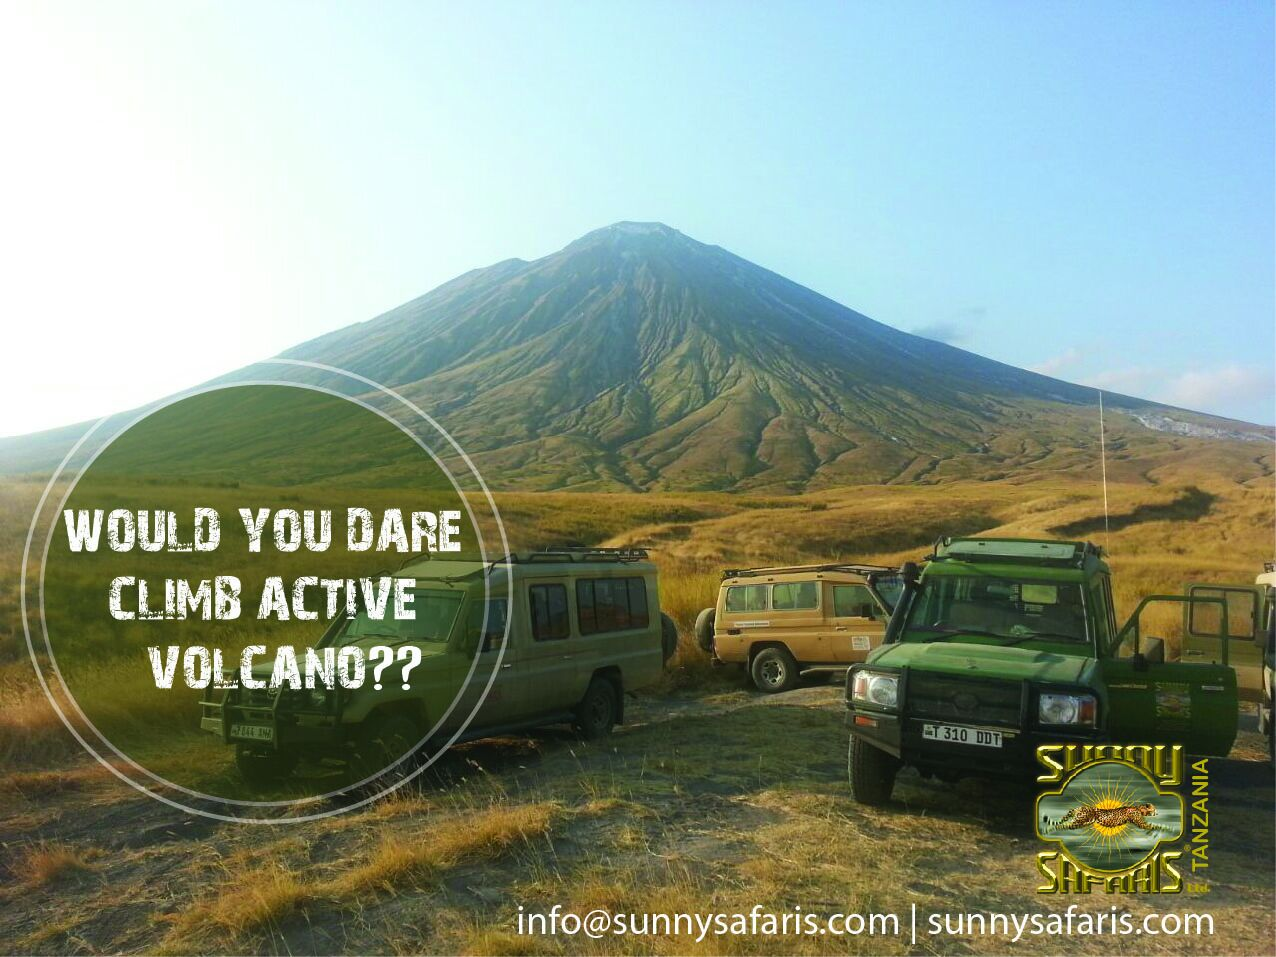 Climb an active volcano - with Sunny Safaris in Tanzania